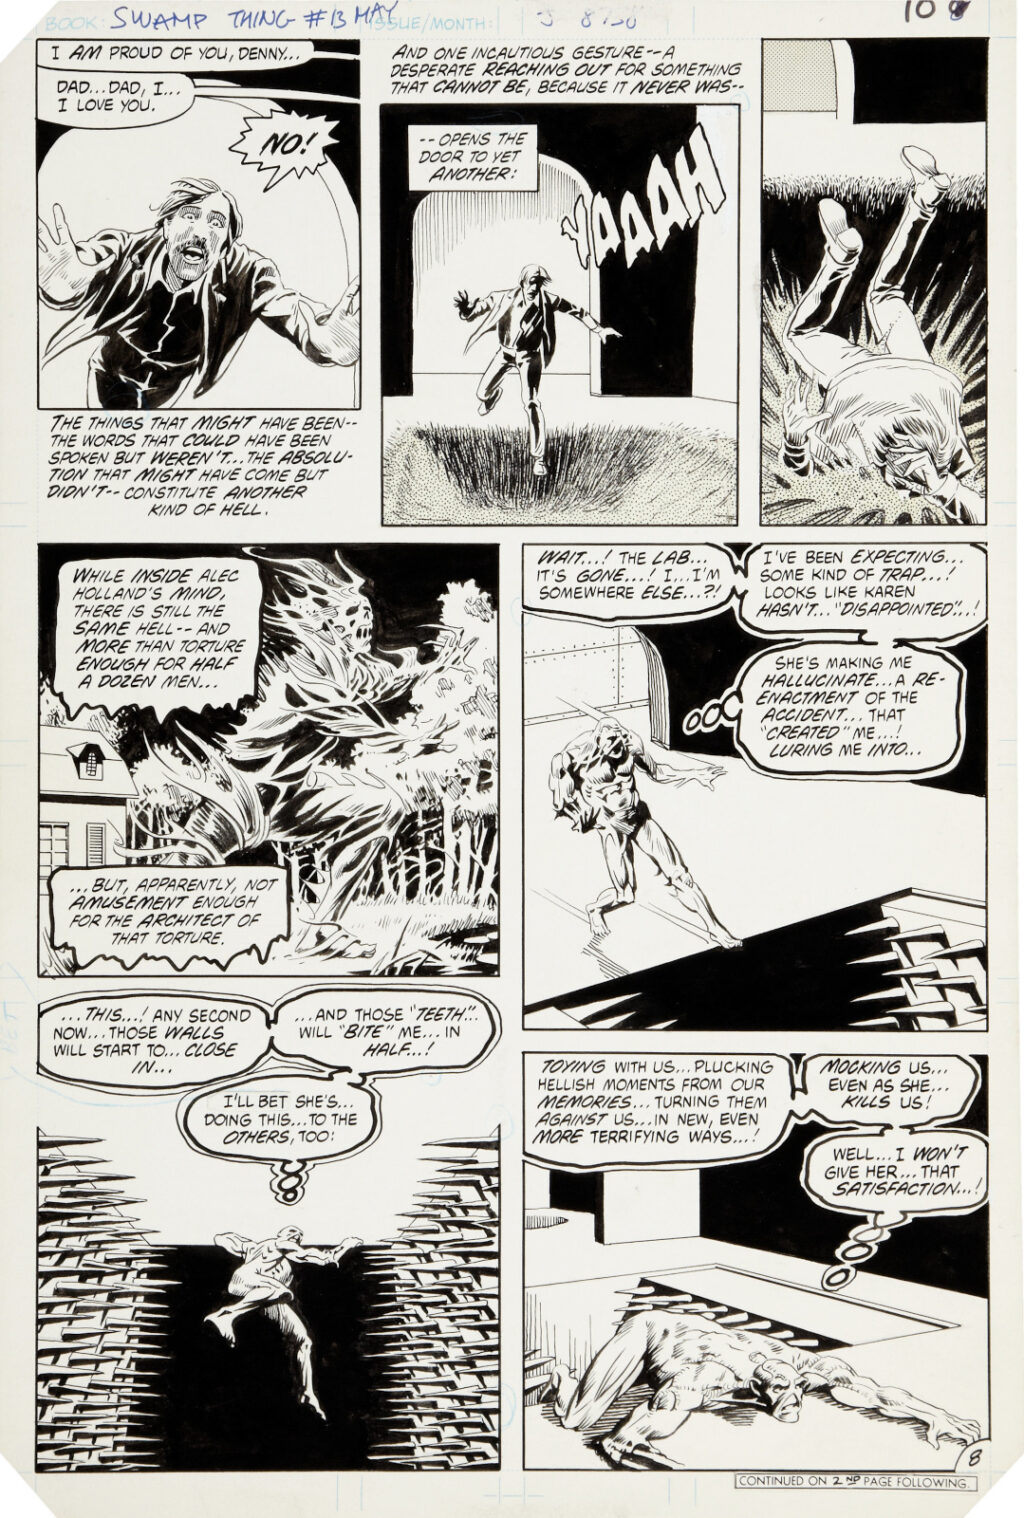 Saga of the Swamp Thing issue 13 page 8 by Tom Yeates